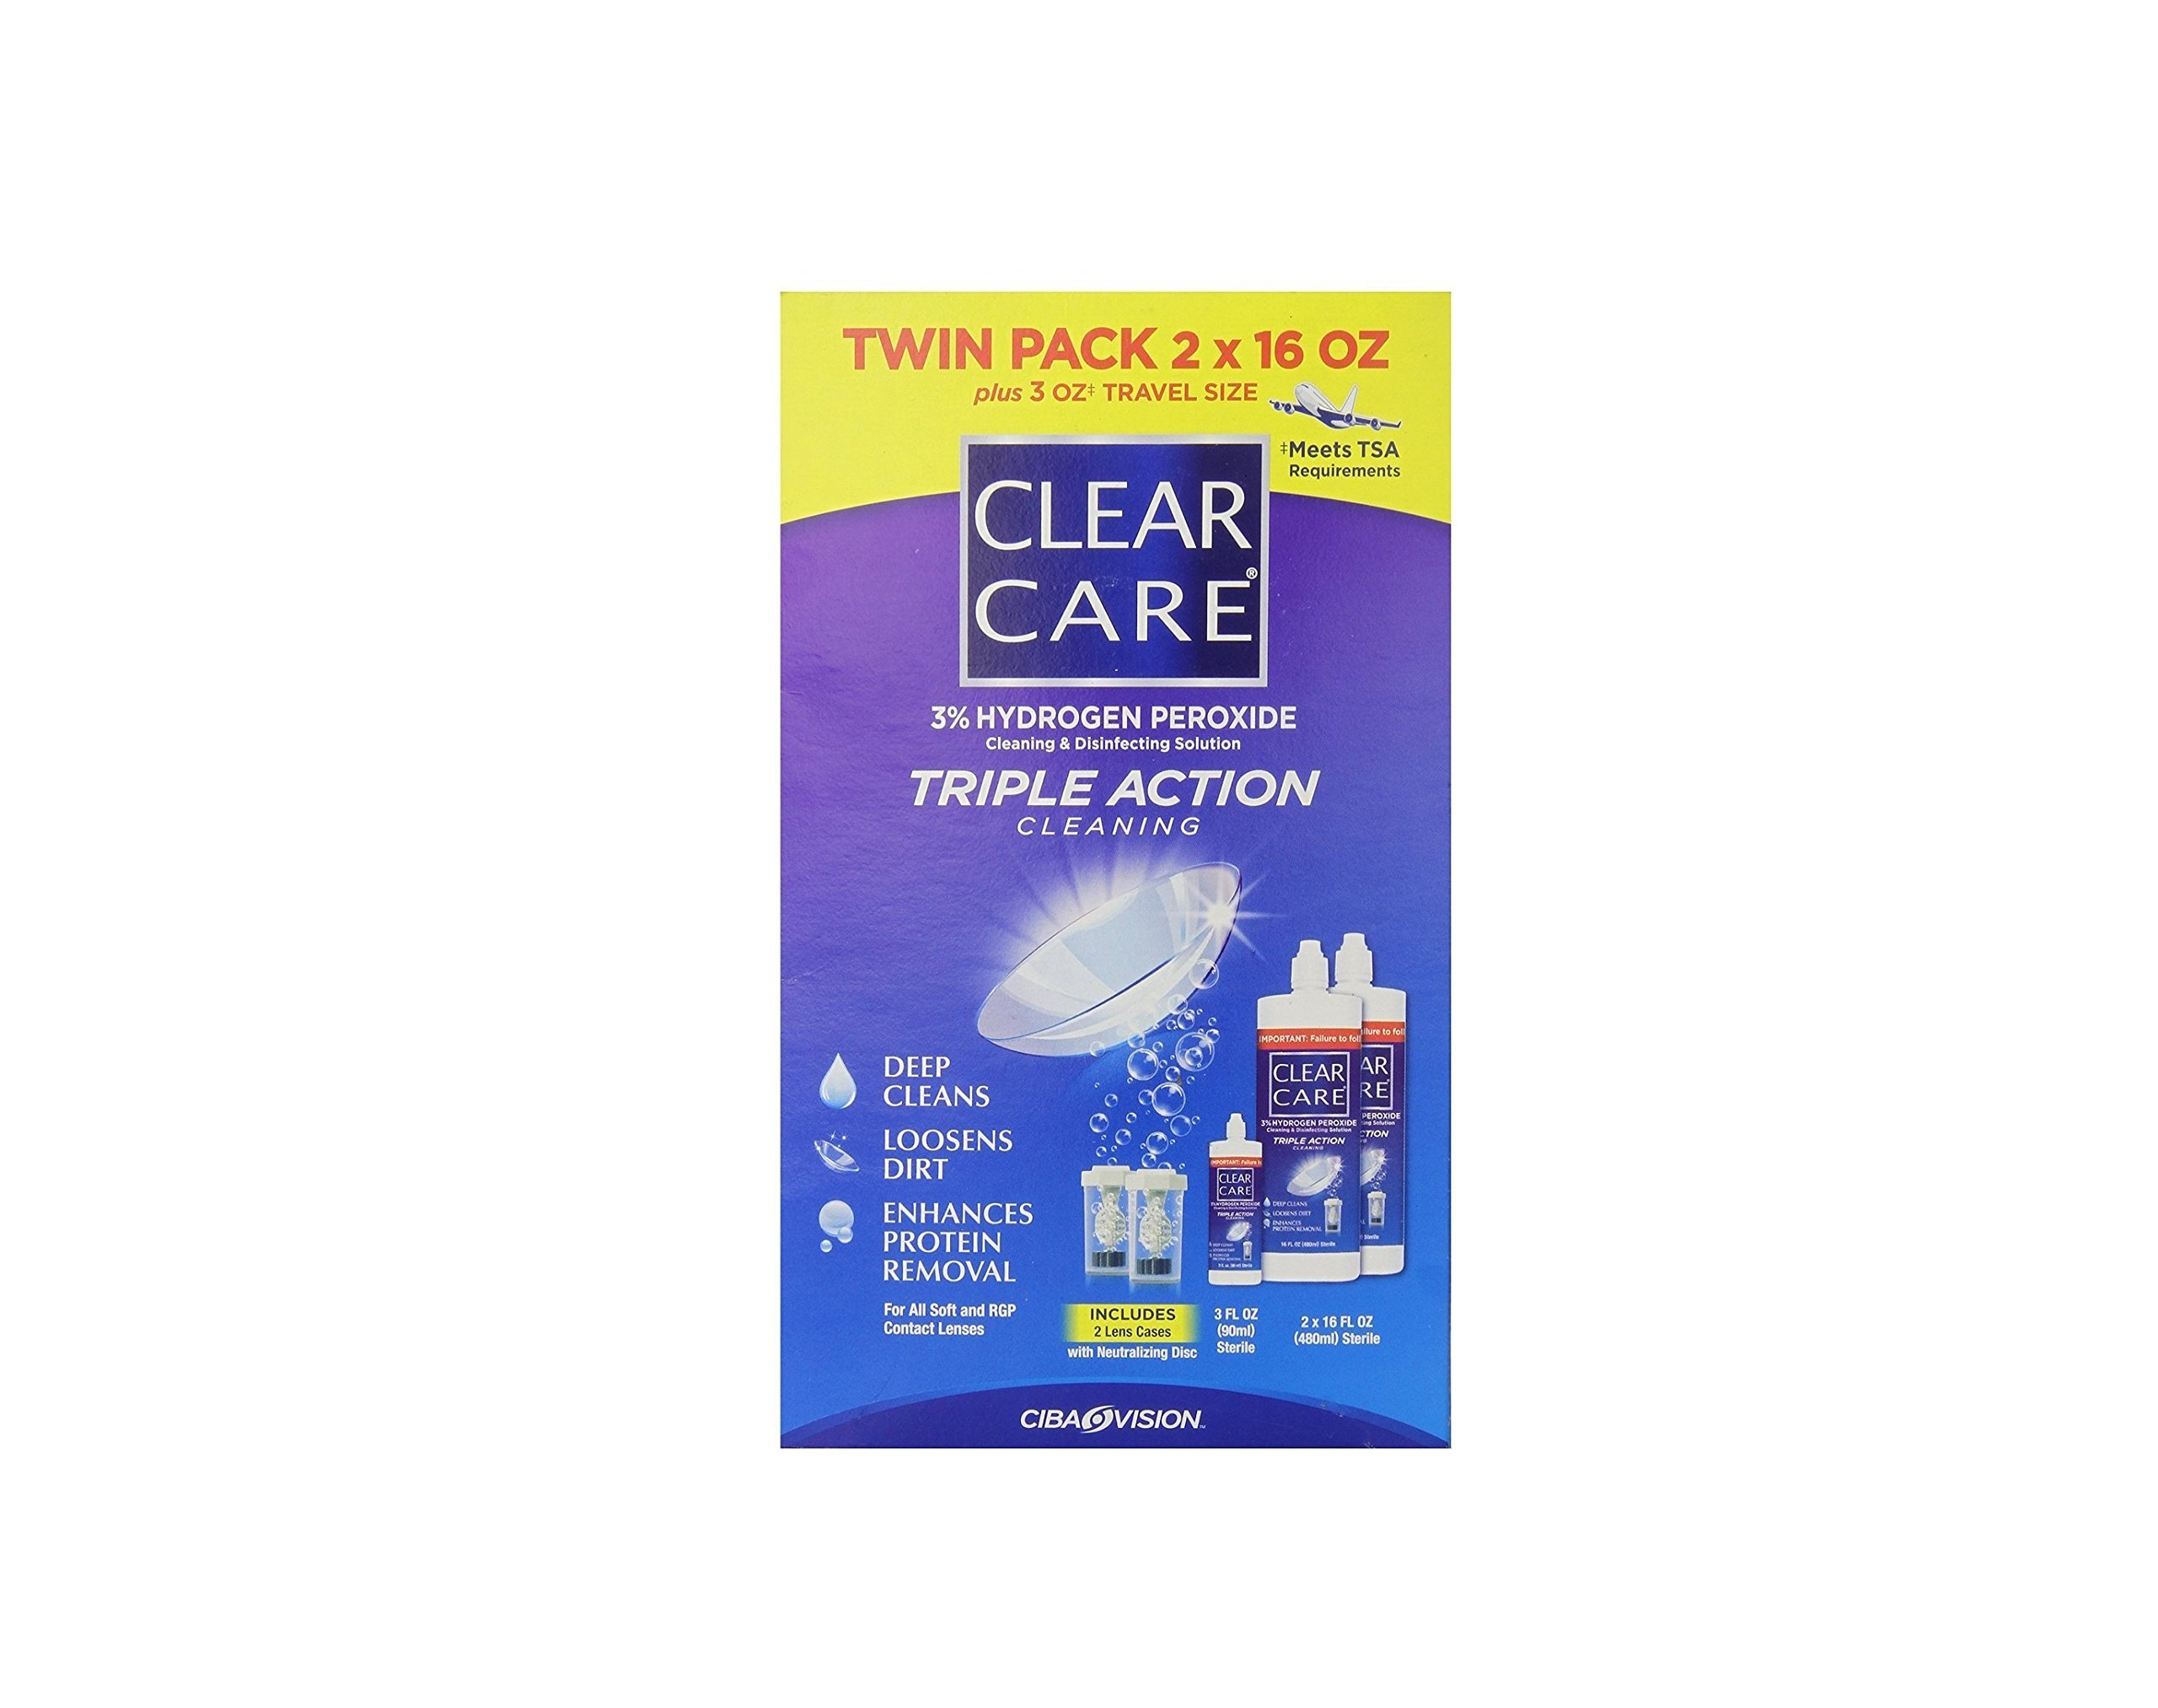 Clear Care 3% Hydrogen peroxide Triple Action Cleaning Triple Action 2x16oz + 3oz Travel Size (Pack of 2)